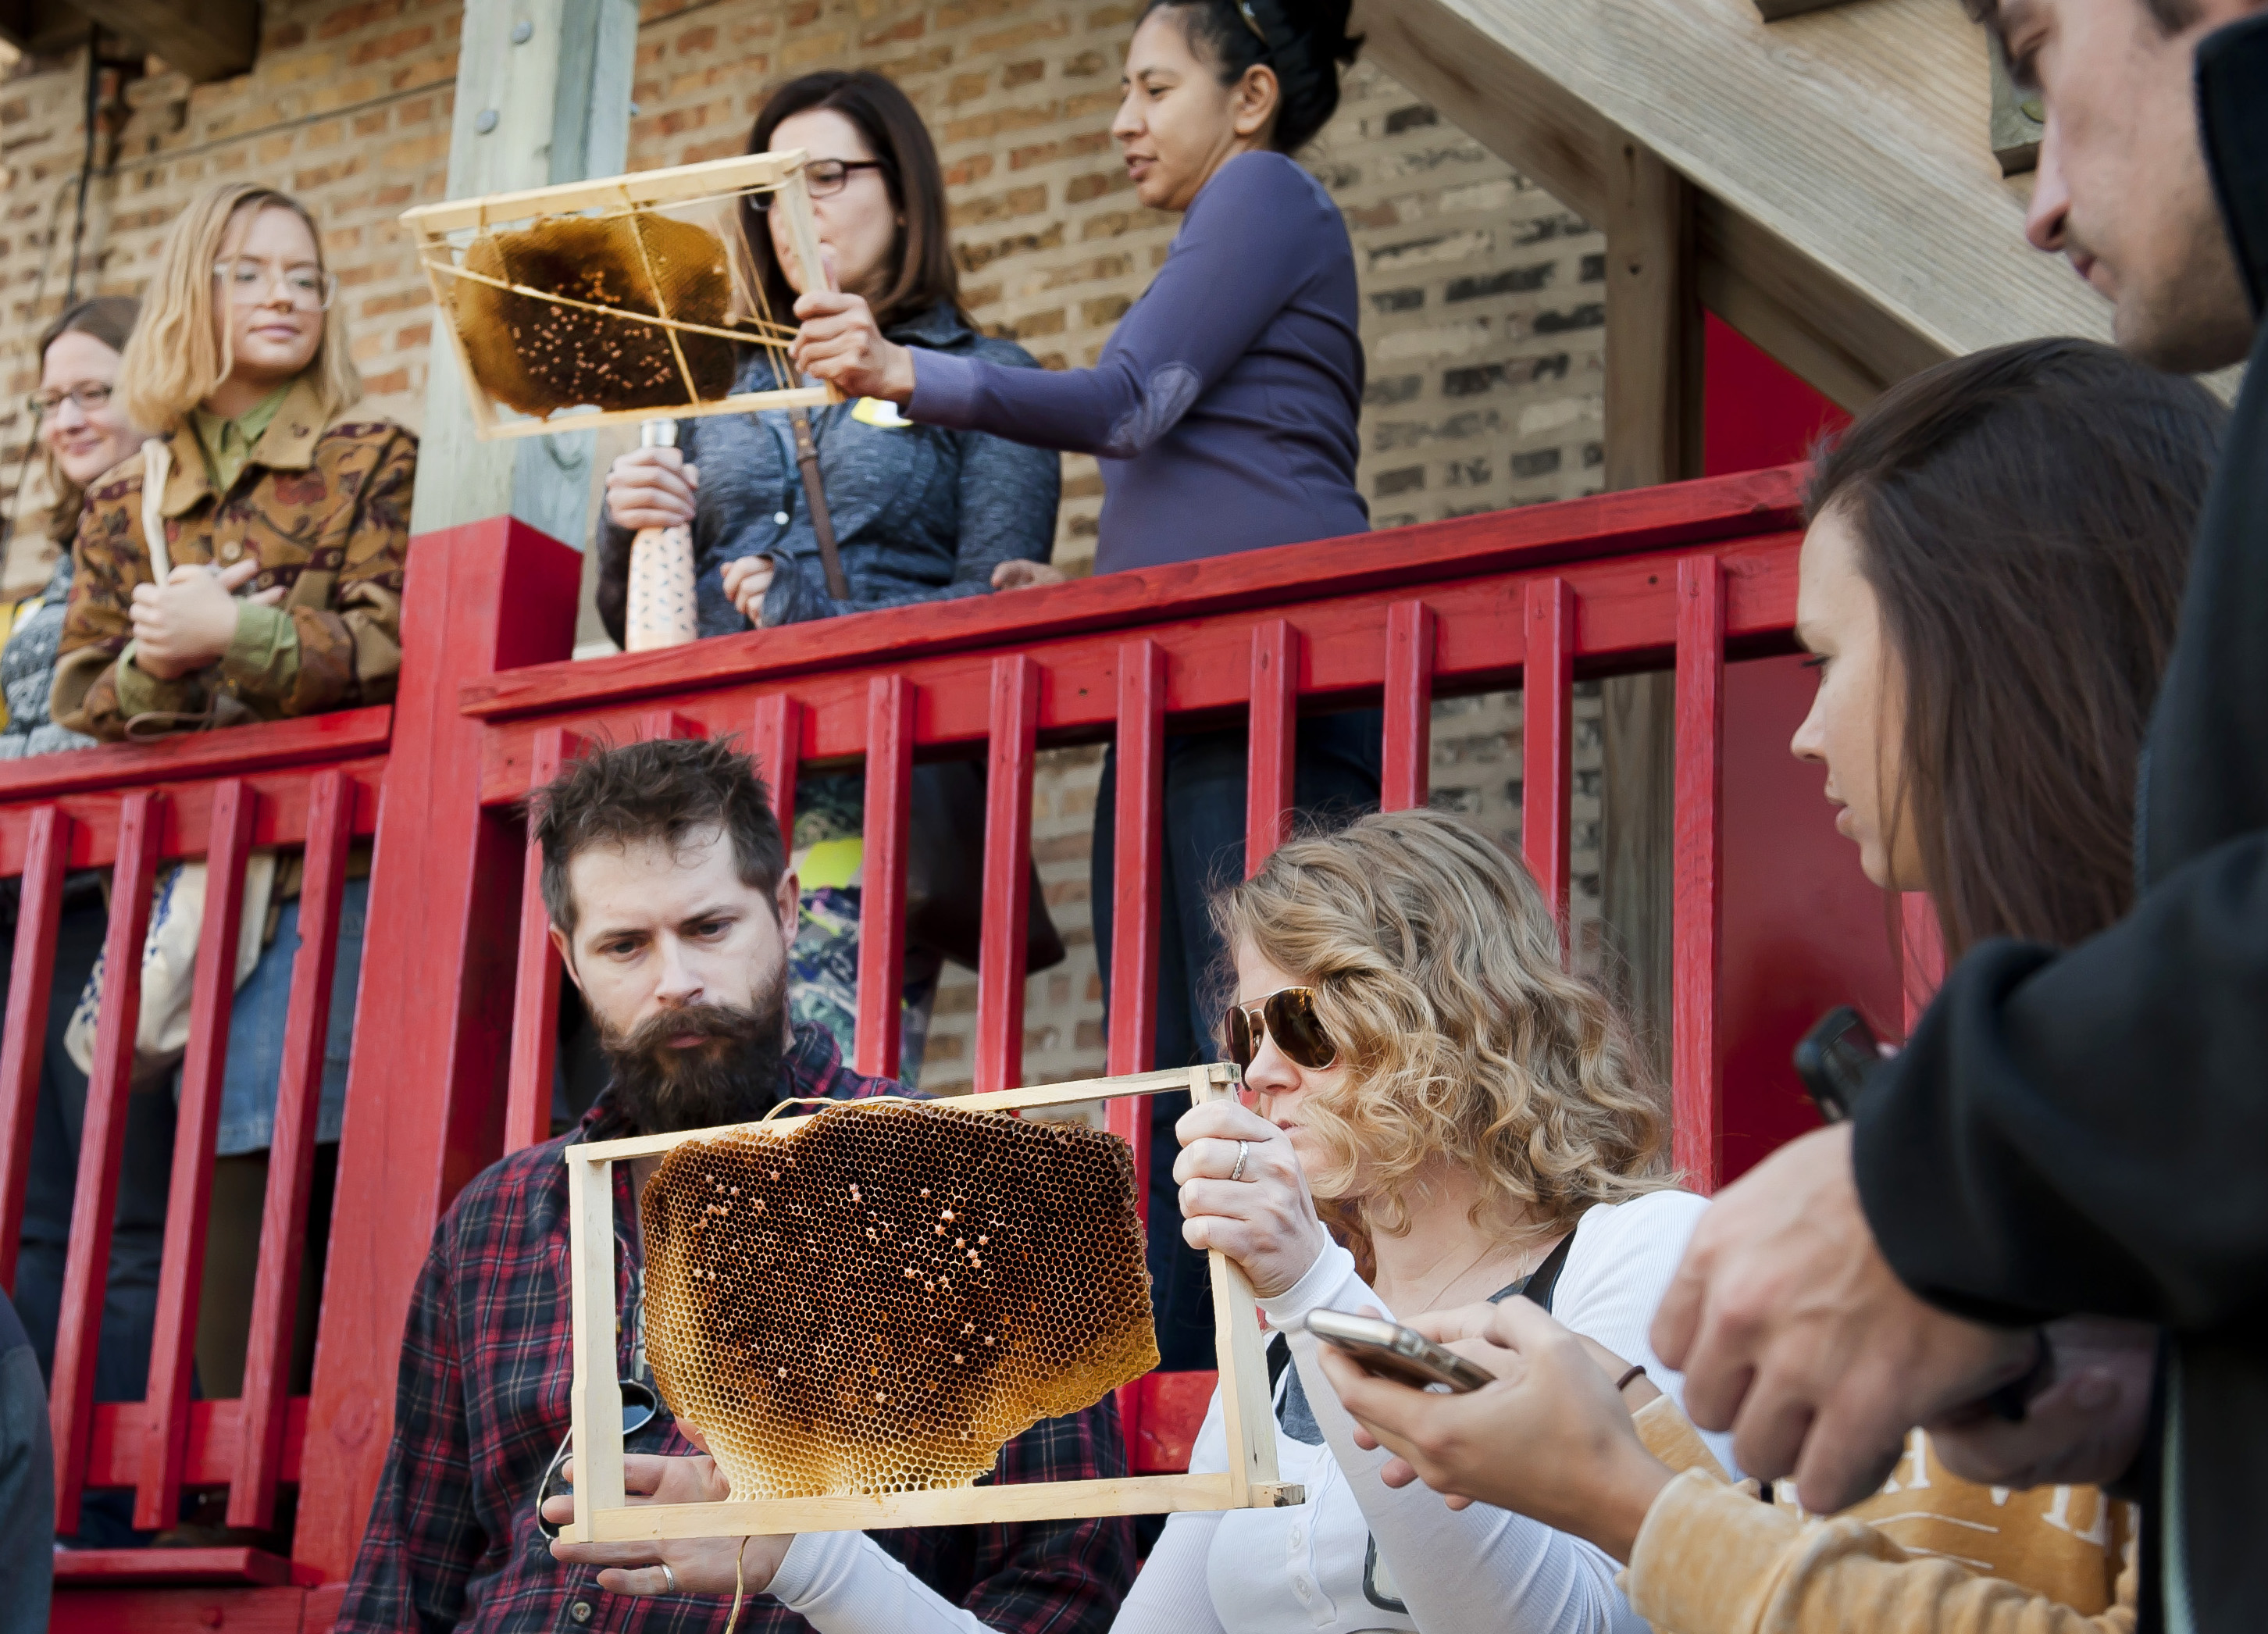 CHICAGO, IL- OCTOBER 23 : CIW participants learn about Beekeeping and equipment during a lab for CIW. The Hive is a Chicago Beekeeping Supply store affiliated with the Westside Bee Boyz located at 3414 W. Roosevelt Rd. (Photo by Tamara Bell/Chicago Ideas Week)